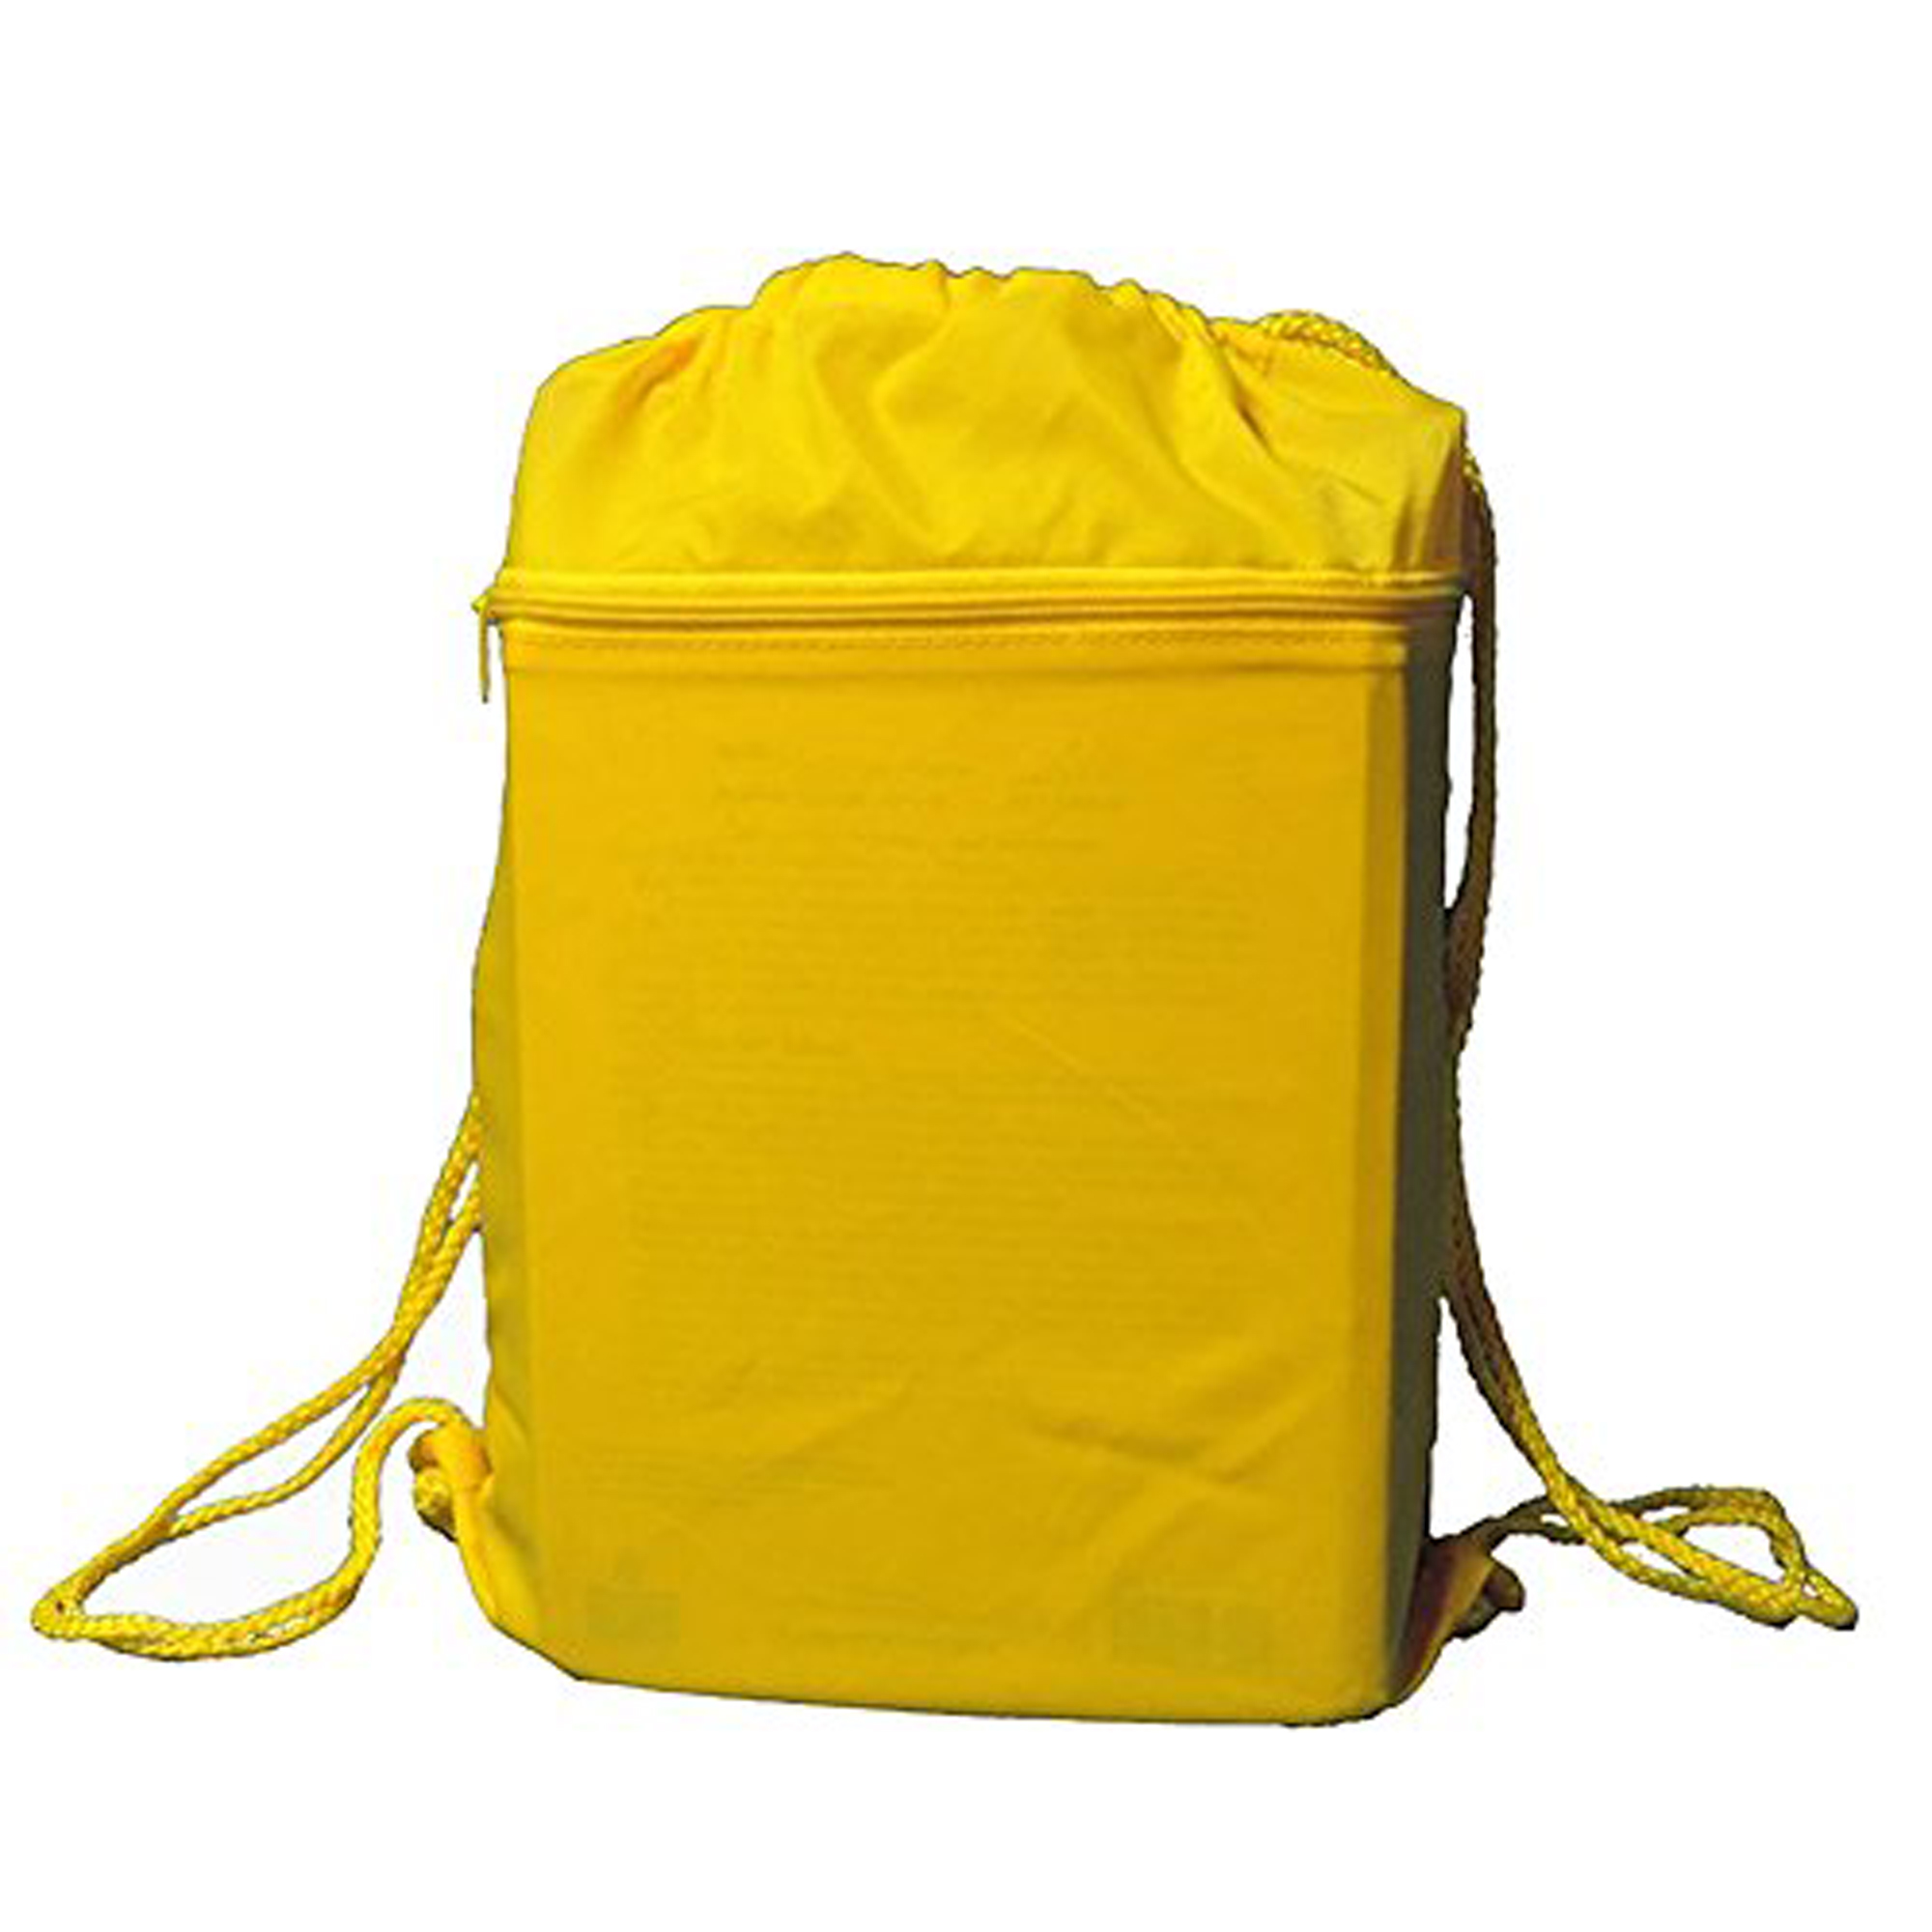 Yellow Drawstring Cinch Sports Travel Bag by Everest